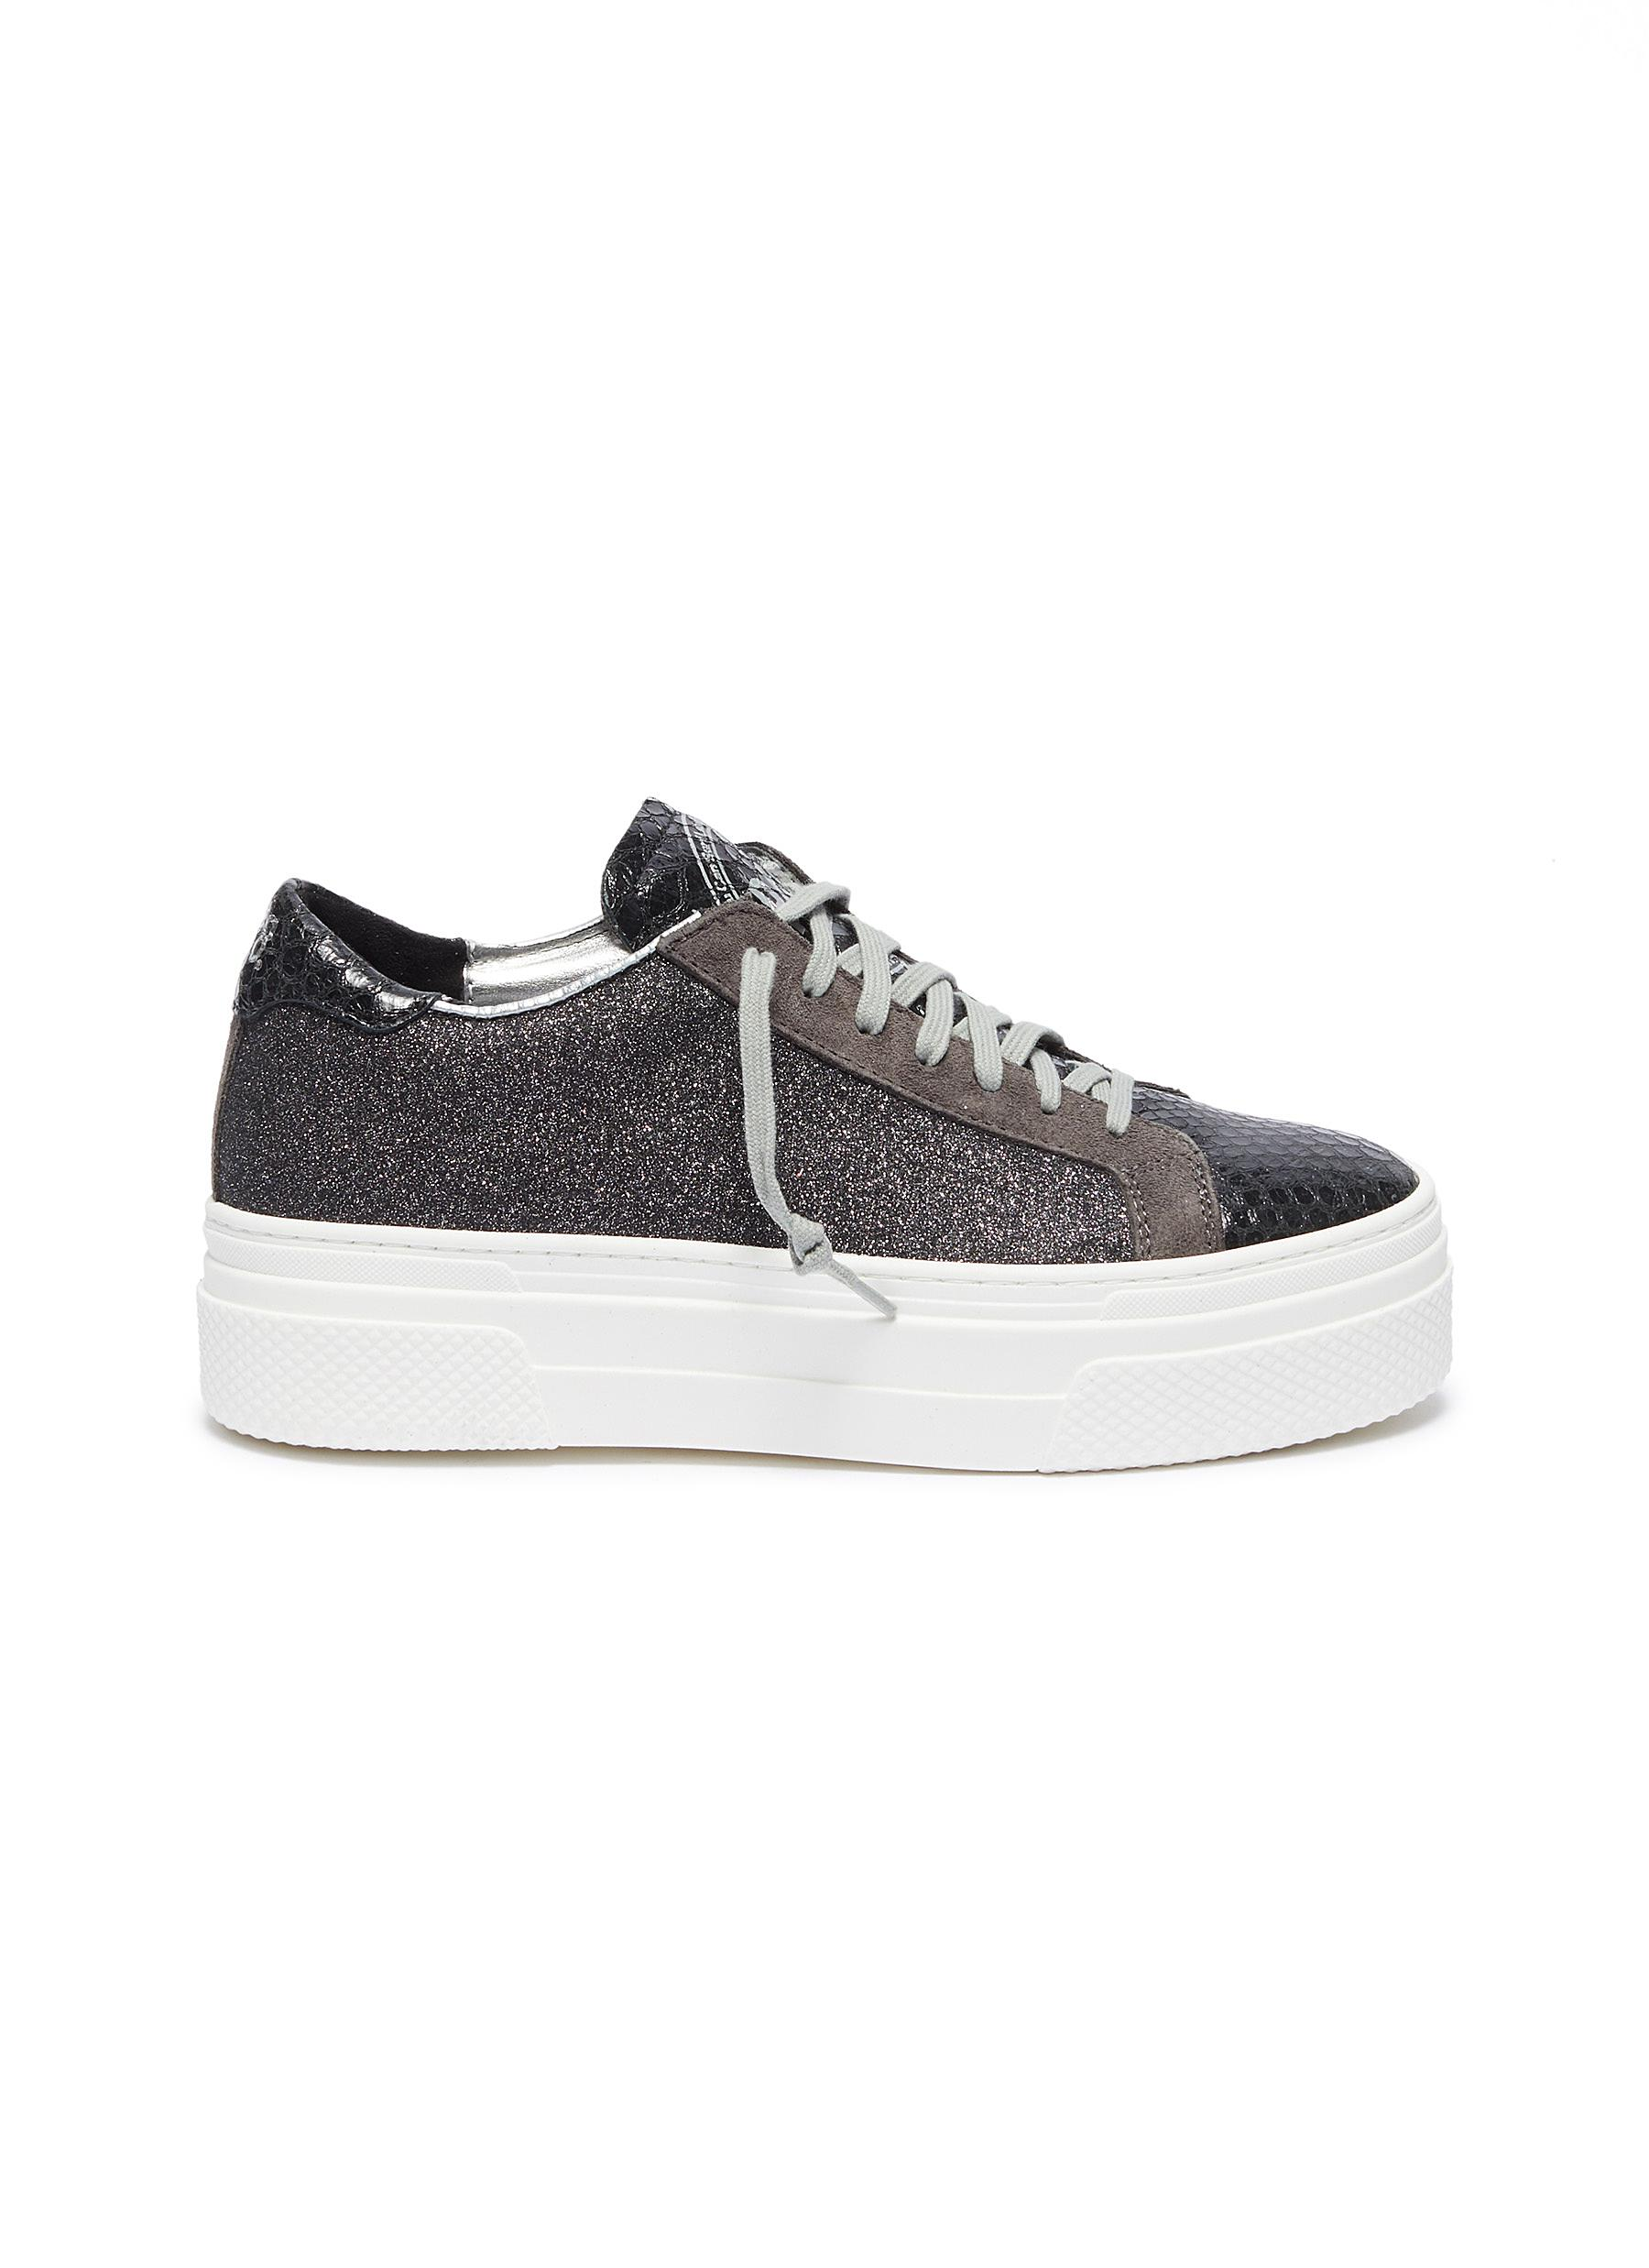 John chunky outsole panelled glitter sneakers by P448